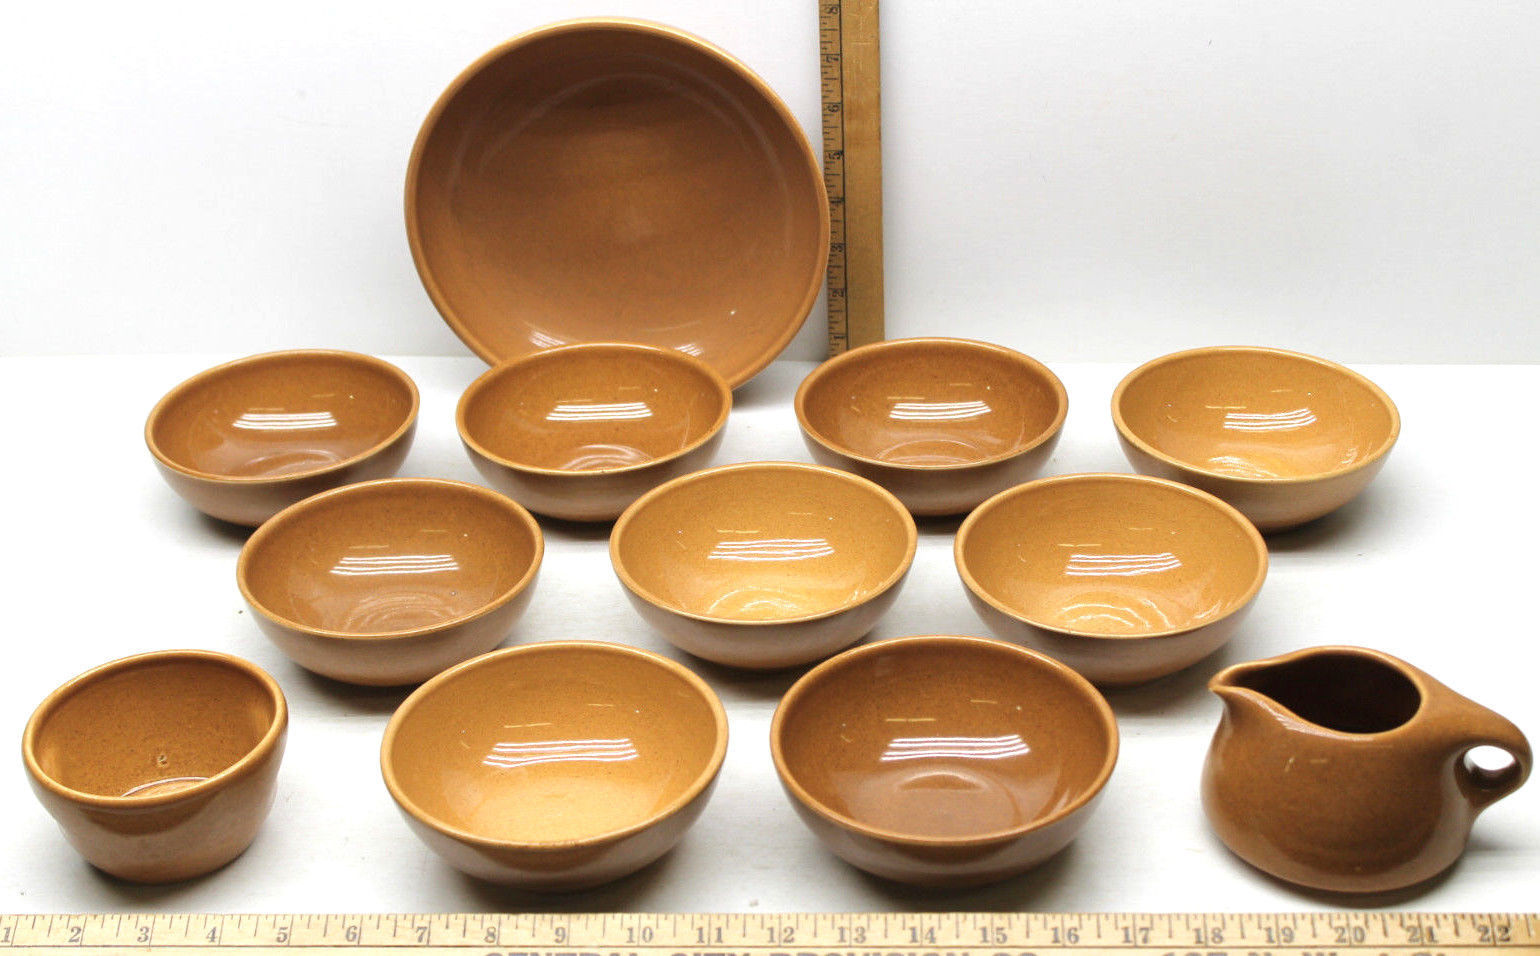 "Primary image for 12 pc Iroquois Casual China Russel Wright Apricot 8.5"" & 5"" Bowls+Creamer+Sugar"